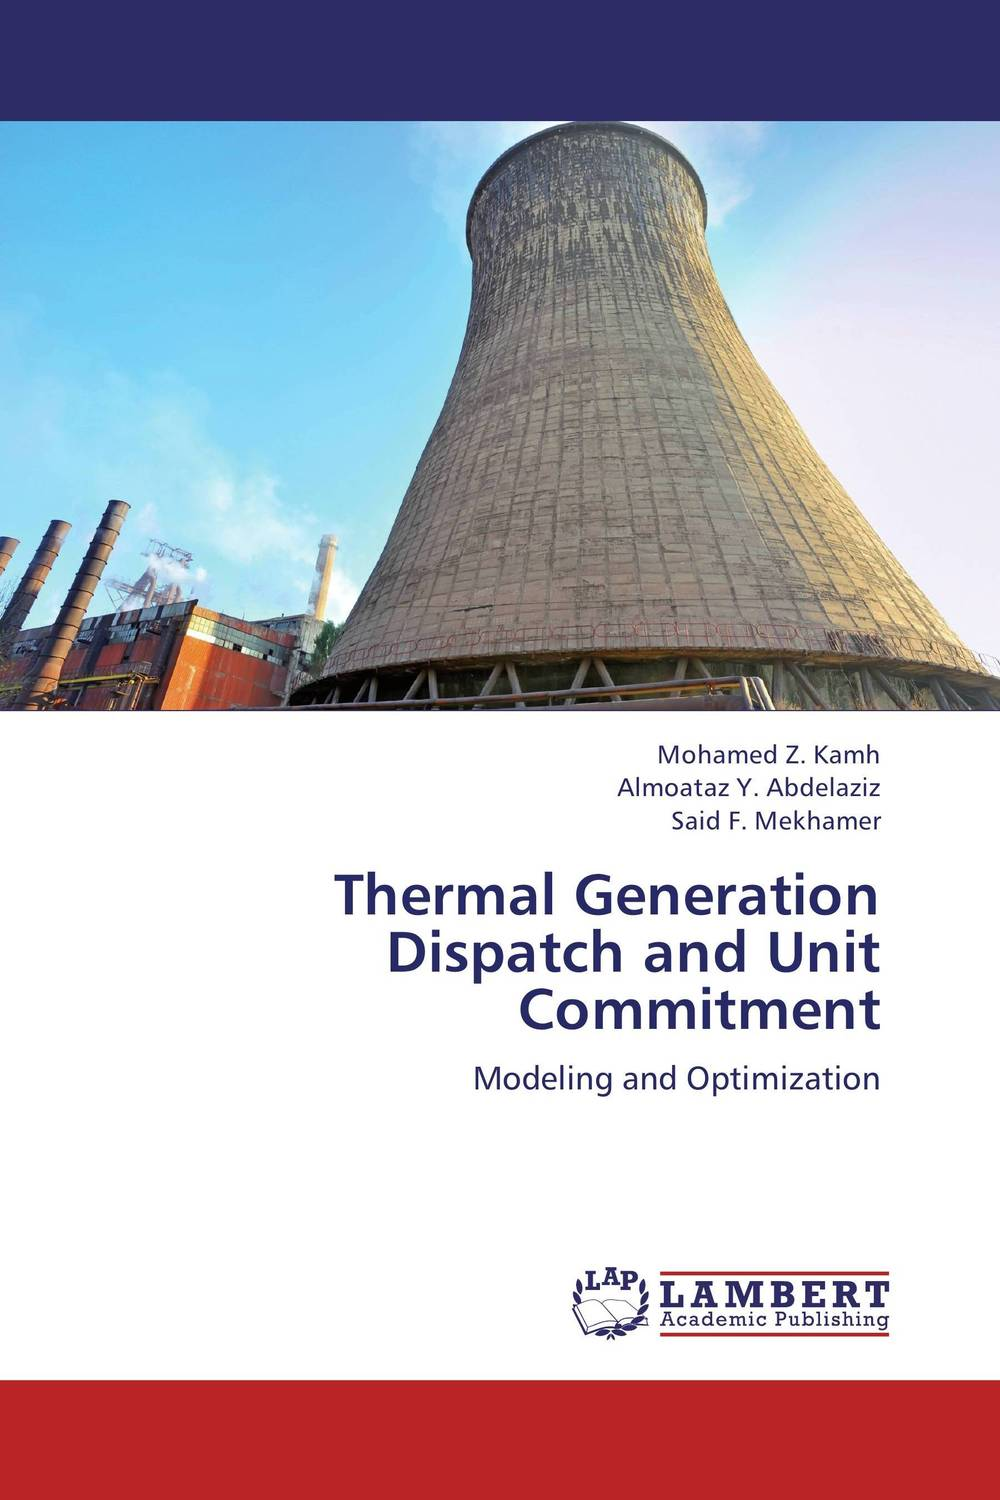 Thermal Generation Dispatch and Unit Commitment